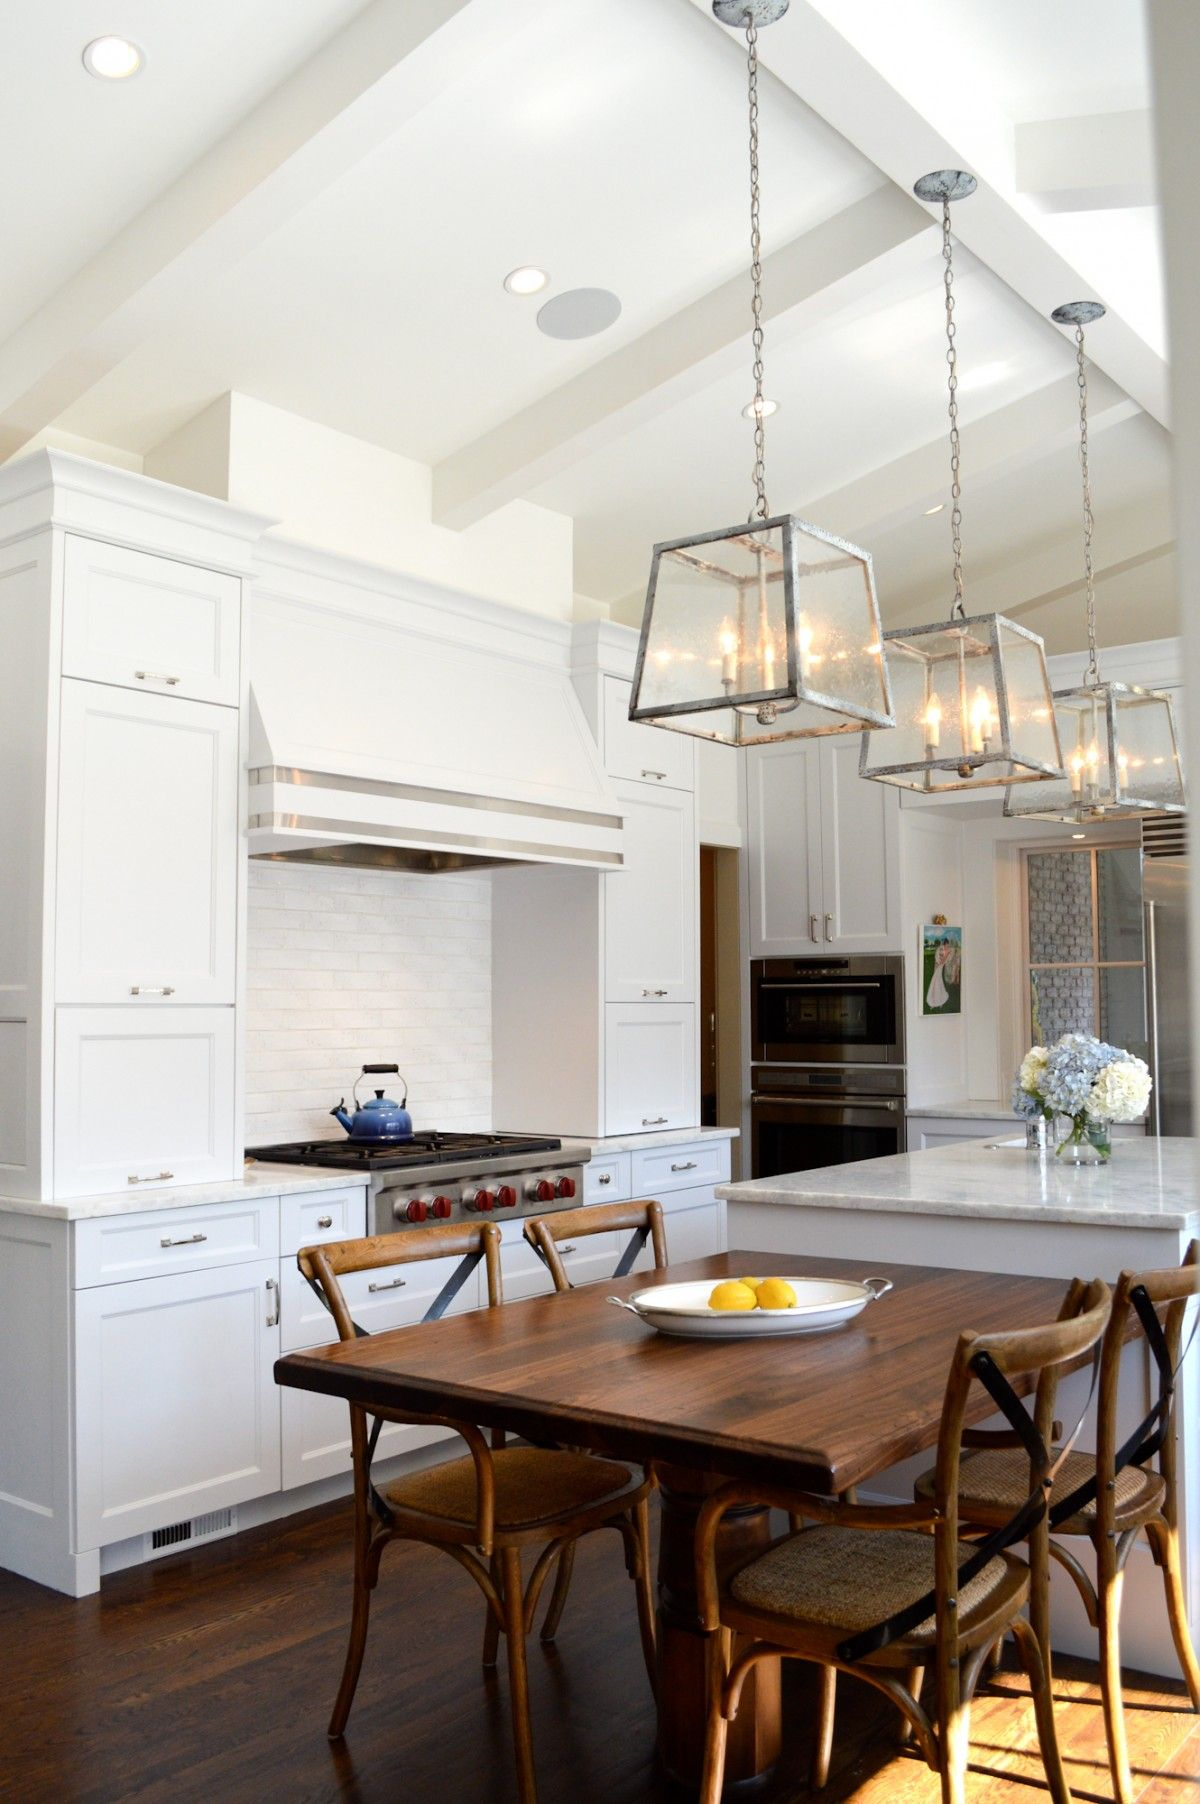 Kitchen Cabinets To Ceiling With Glass Cabinetry Integrated Hood Dining Table Off Island High